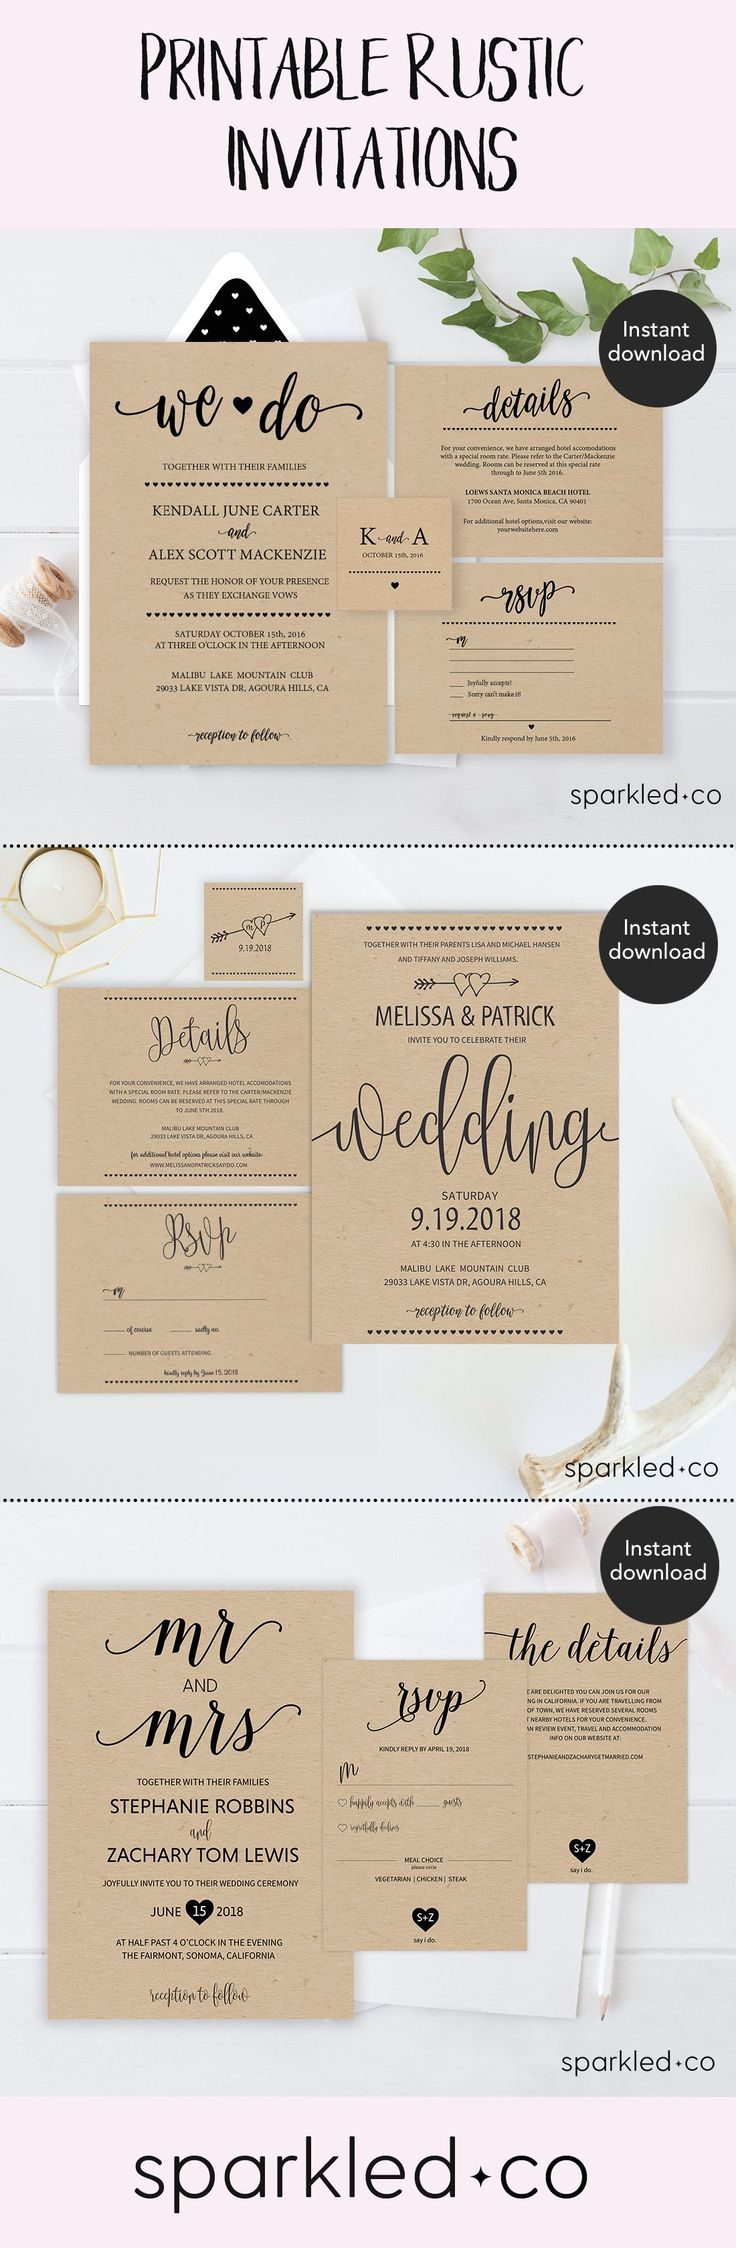 graduation party invitation templates for word%0A Affordable DIY Rustic Wedding Invitations